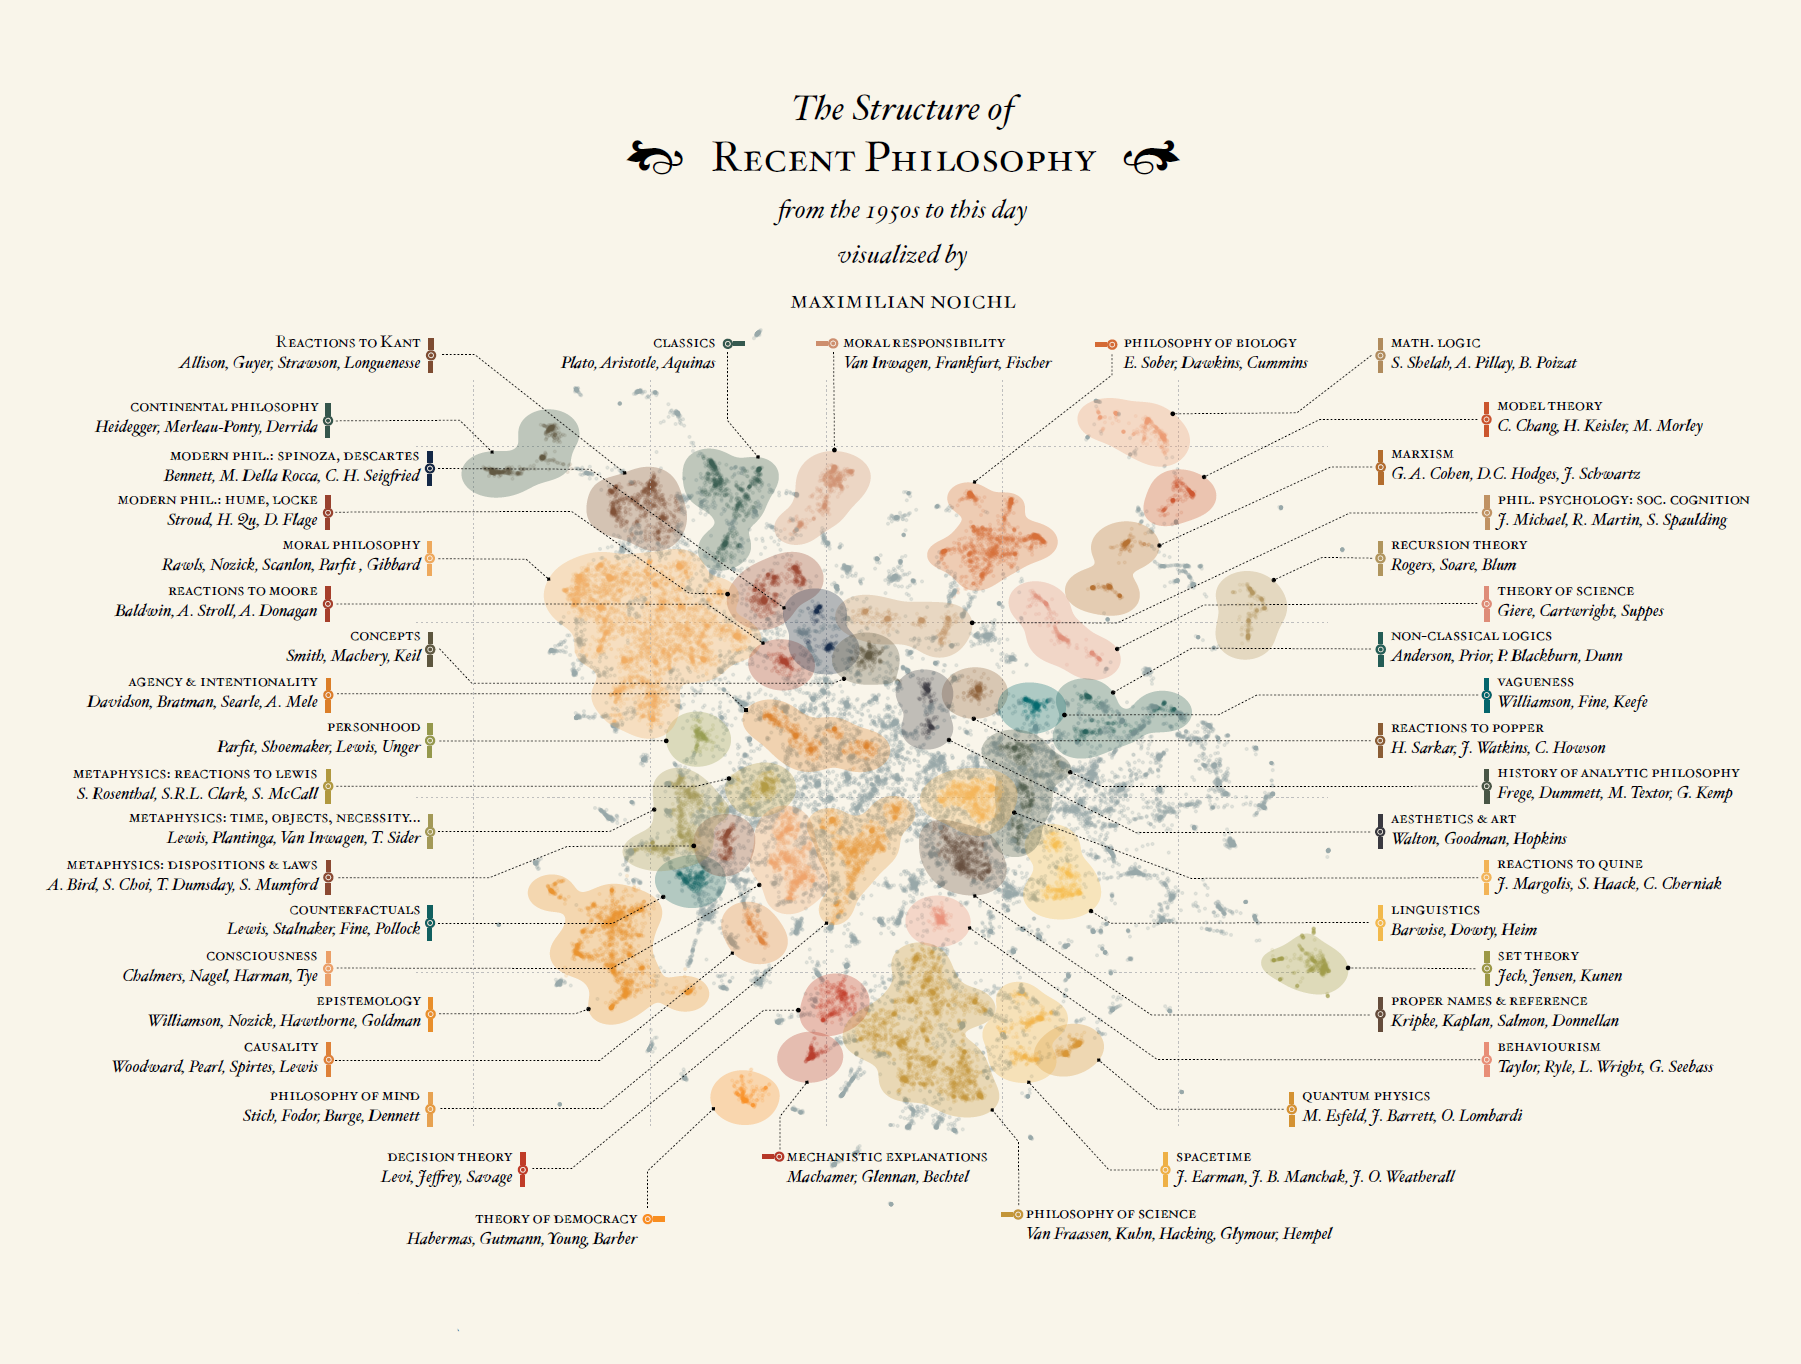 Visualizing the Structure of Philosophy from the 1950s to Today